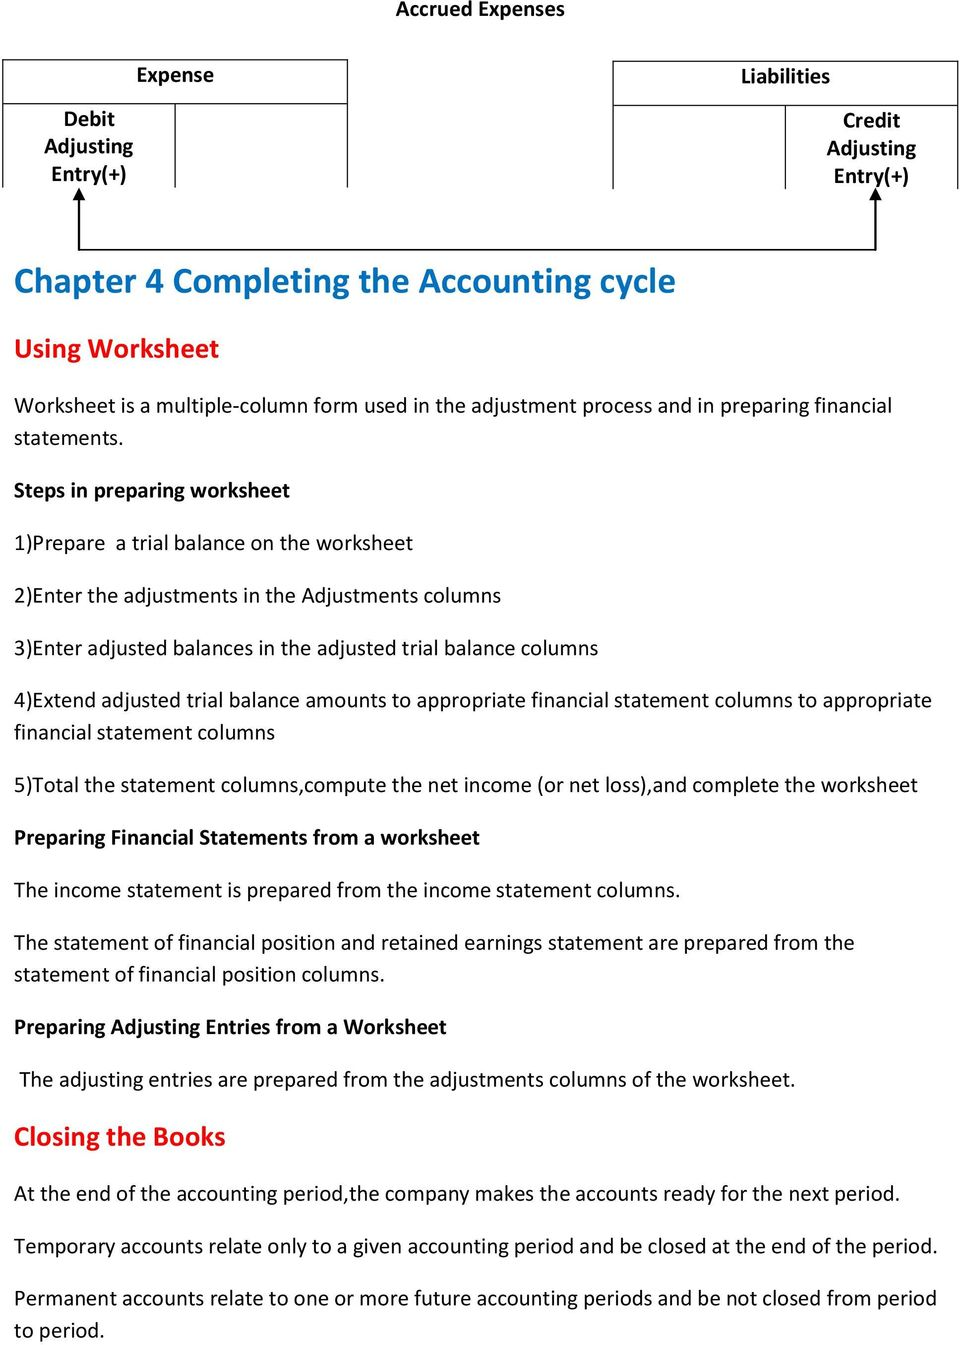 further  together with 5 Steps in preparing Accounting Worksheet – WEL E TO CMUSR additionally In e Tax Preparation Worksheet   Premium Worksheet furthermore  furthermore Worksheet for preparing a statement of cash flows   Accounting for additionally How to Create a Table in an Excel Worksheet   Video   Lesson besides Chapter 1 Accounting in action   PDF furthermore  as well Steps in Preparing a Worksheet 4 9 LO 1 Prepare a worksheet 4 Extend as well The structure of a worksheet or workbook as well 20 Will Preparation Worksheet – diocesisdemonteria org in addition Preparing Financial Statements   principlesofaccounting together with Essay Preparation Worksheet by Rebeckah   Teachers Pay Teachers further B    Steps in Preparing the Worksheet further Accounting Worksheet   Format   Preparation   Ex le. on steps in preparing a worksheet